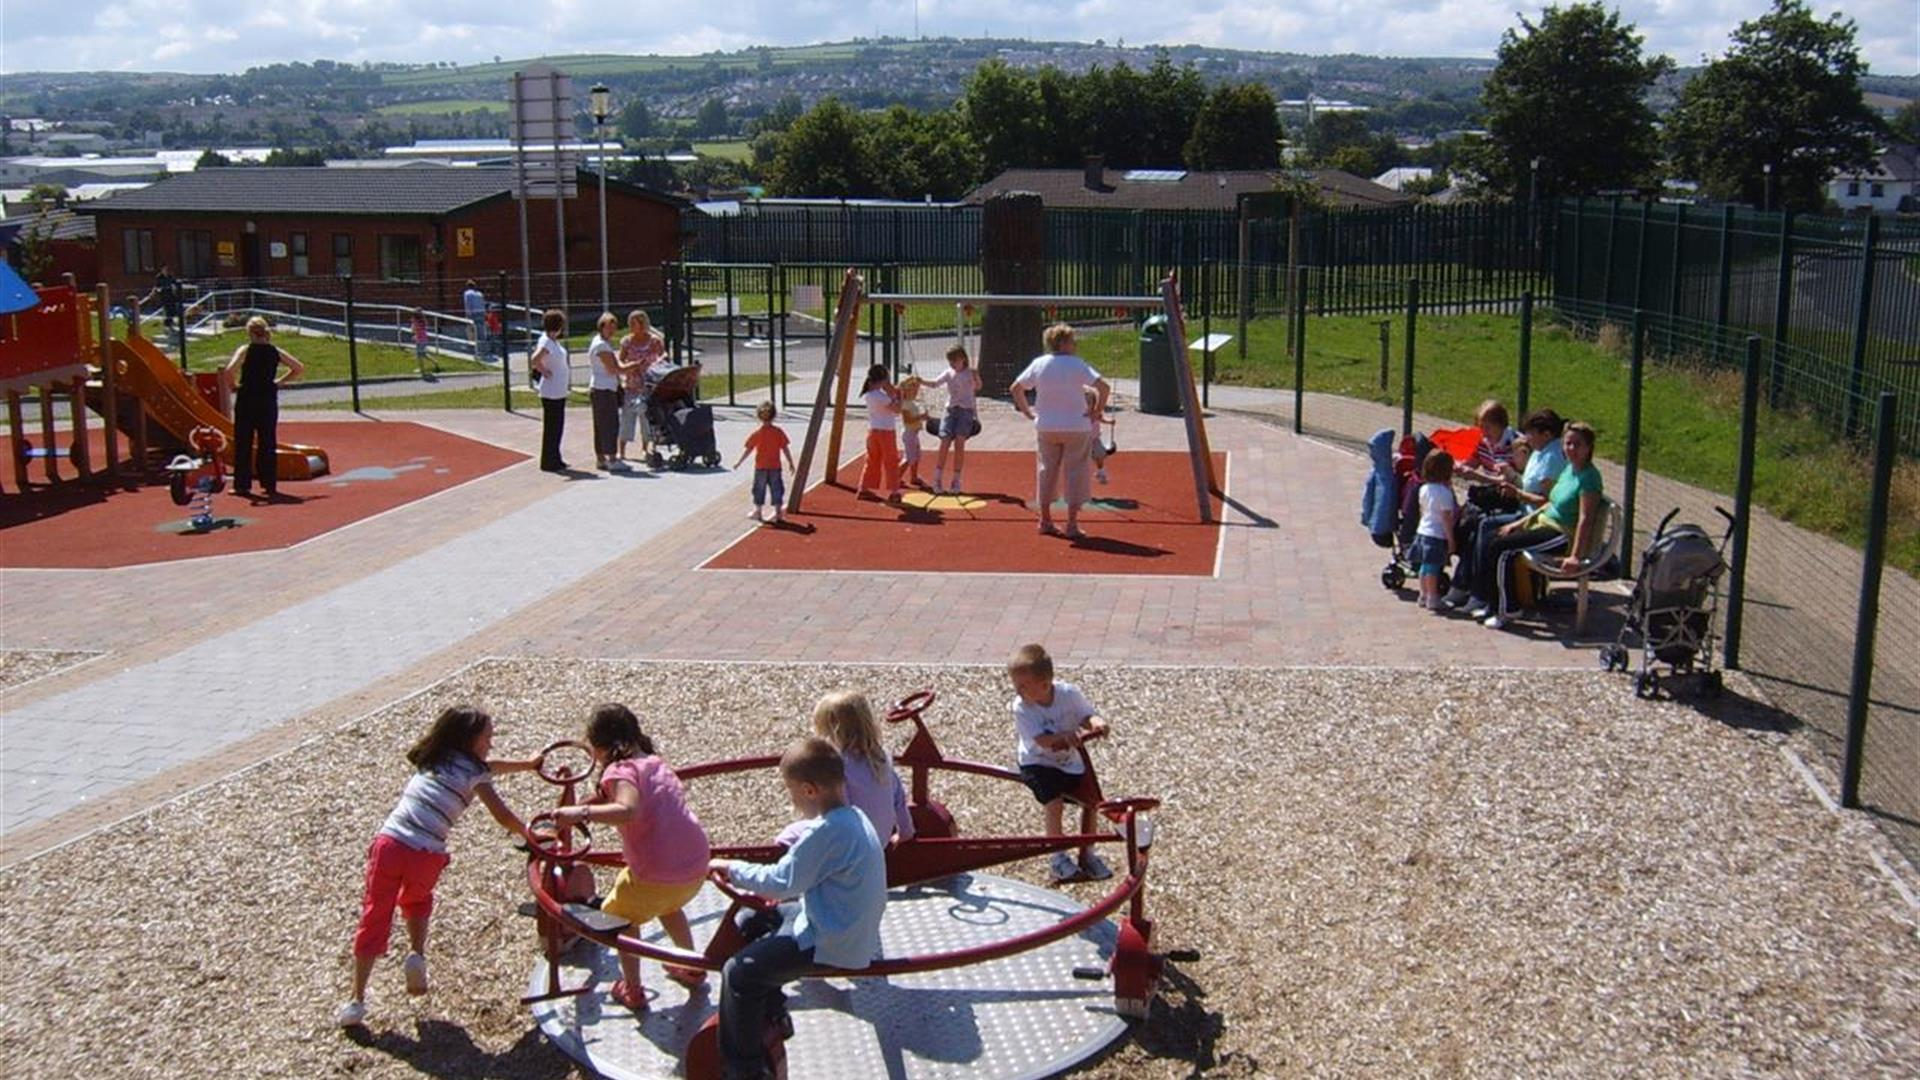 The Playtrail